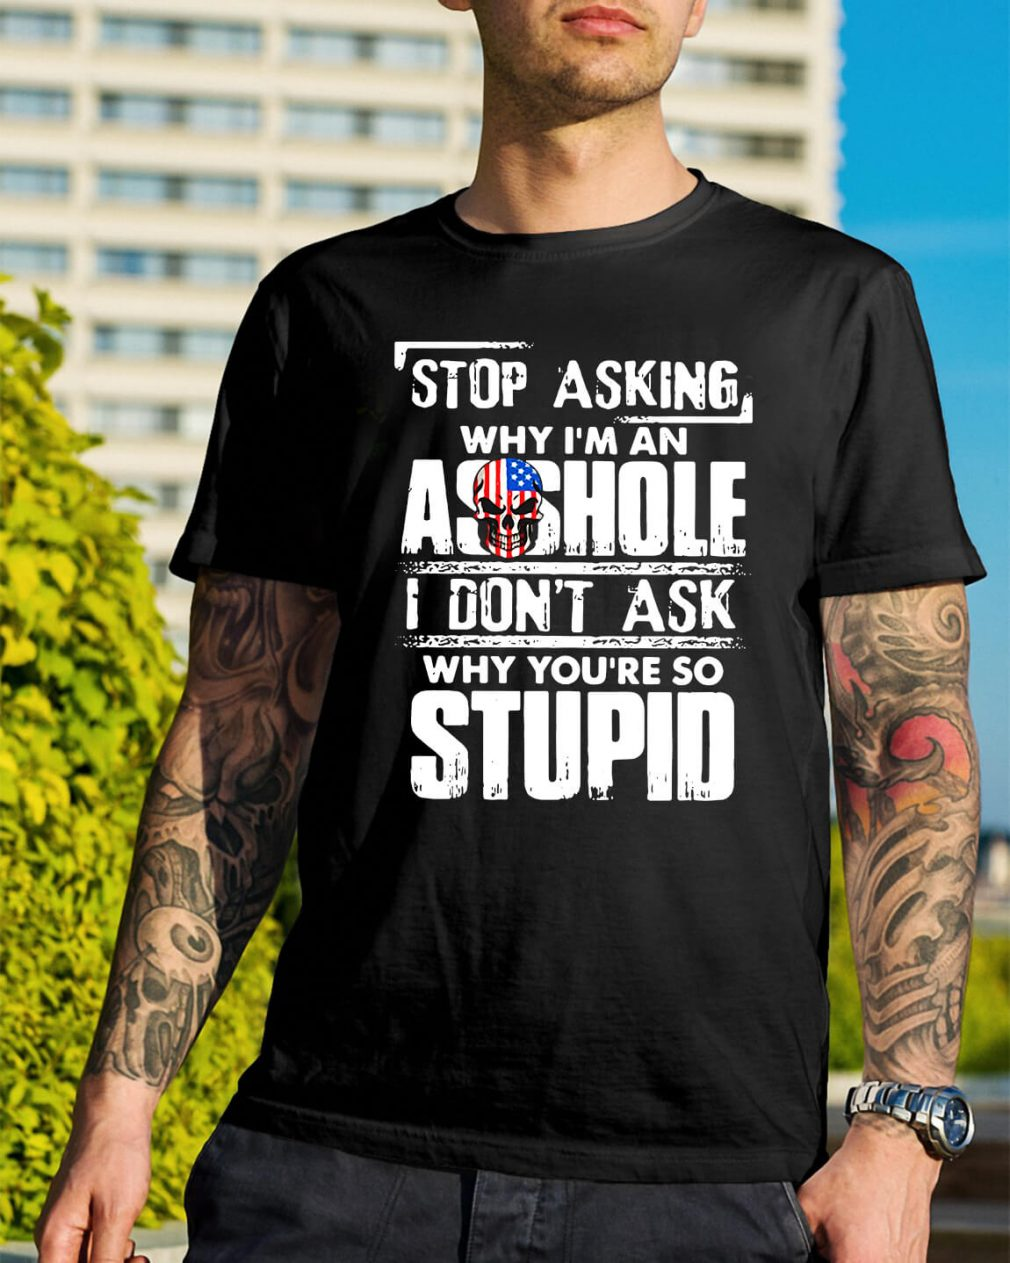 Stop asking why I'm an Asshole I don't ask why you're so stupid shirt